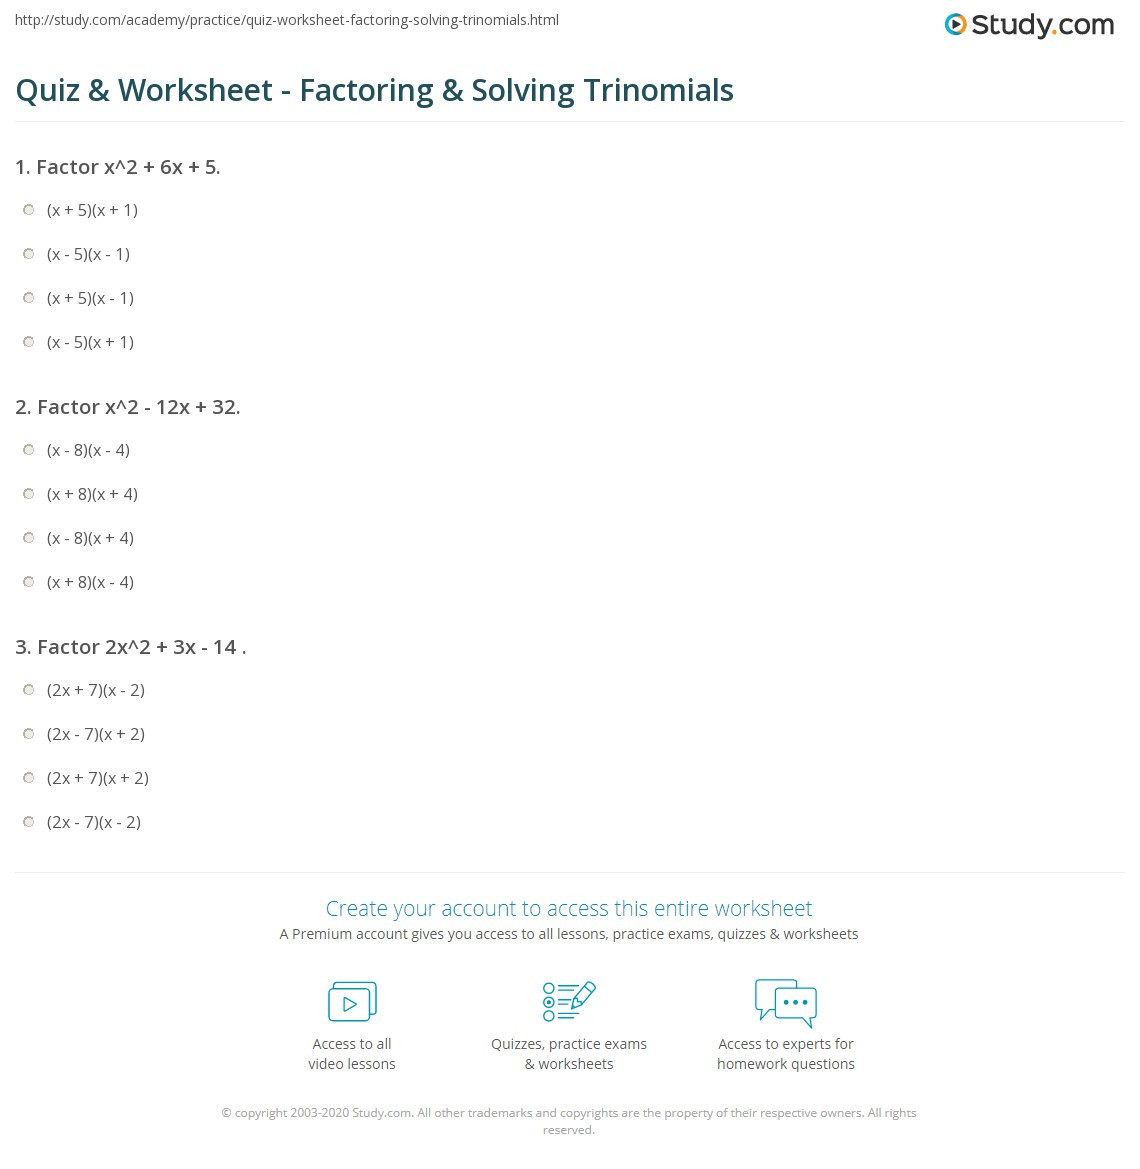 30 Factoring Trinomials A 1 Worksheet